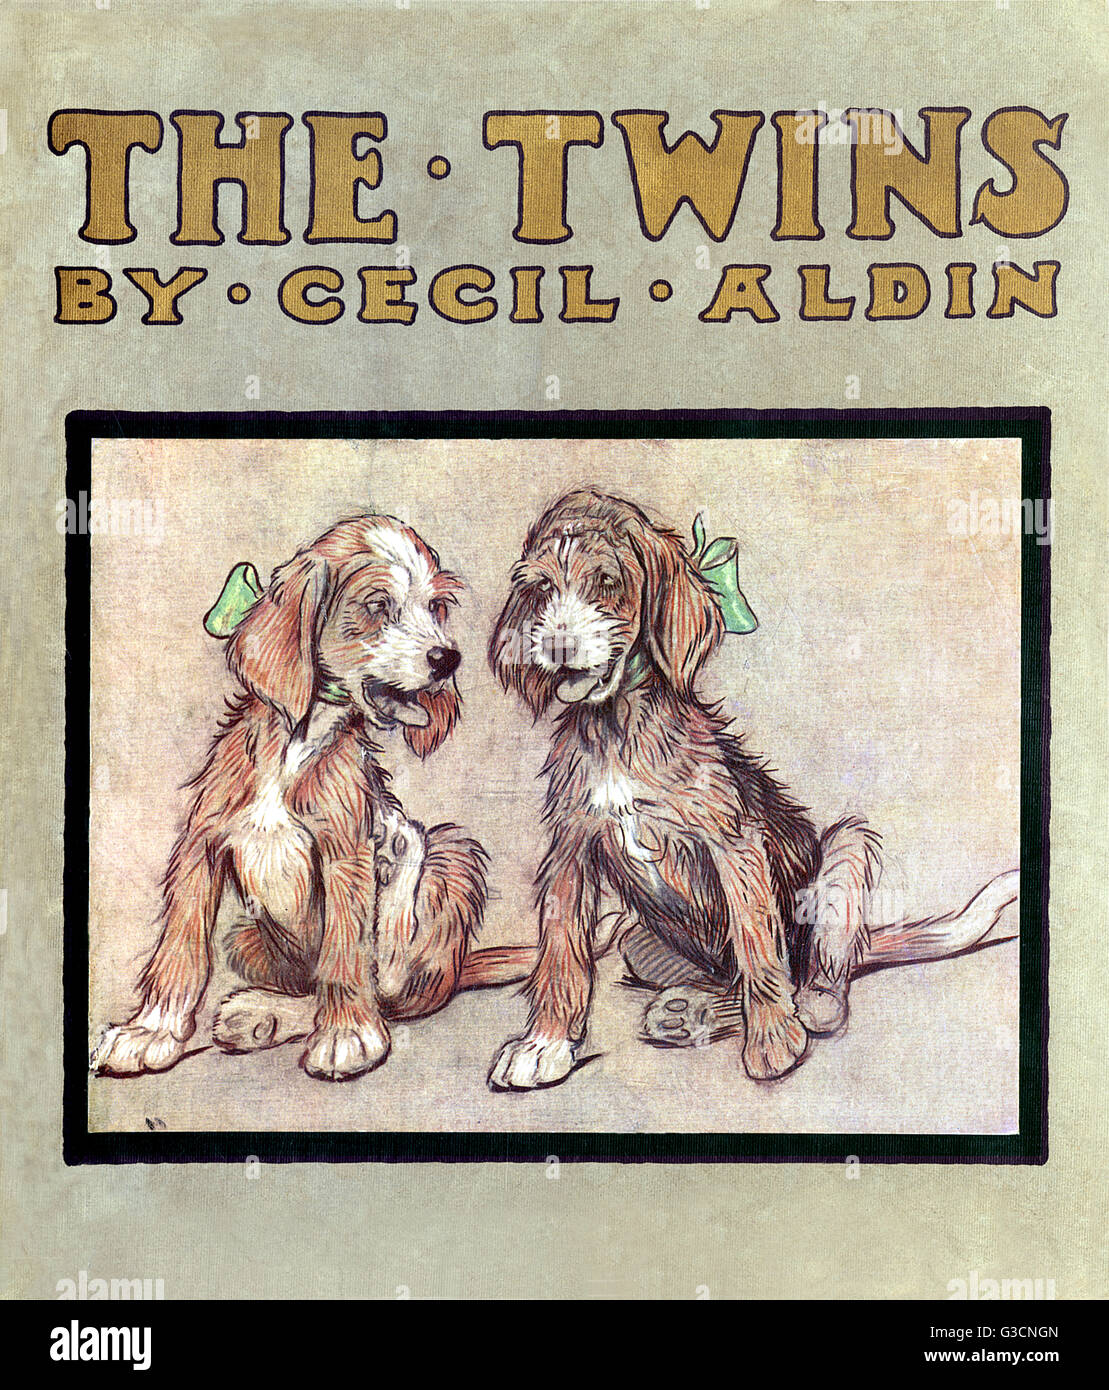 Book cover design, The Twins by Cecil Aldin, showing two cute terrier puppies with green bows.      Date: 1910 - Stock Image